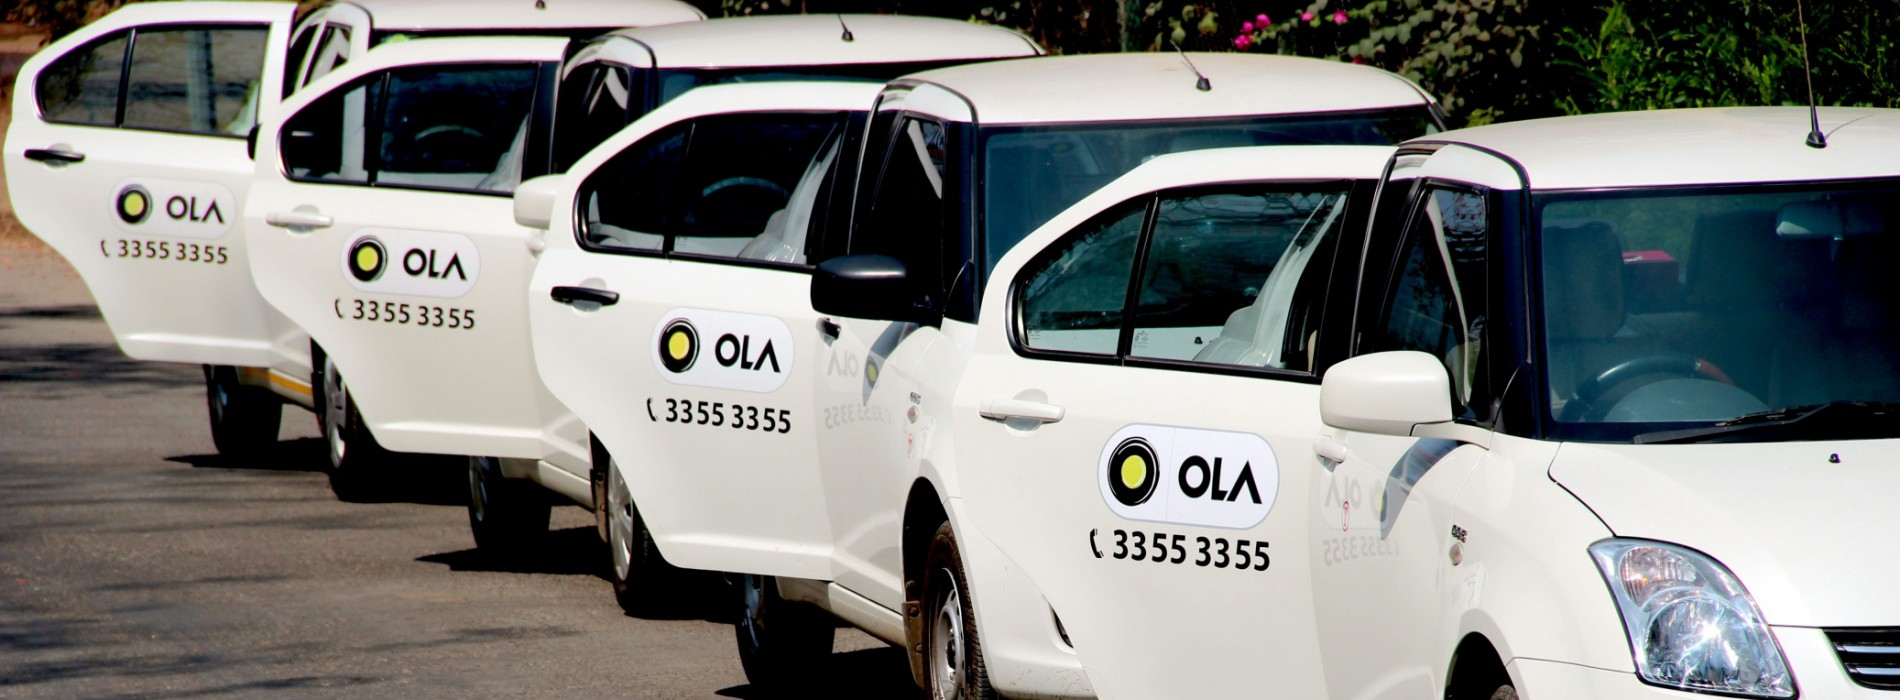 Ride with Ola and win a getaway to Mauritius from SOTC